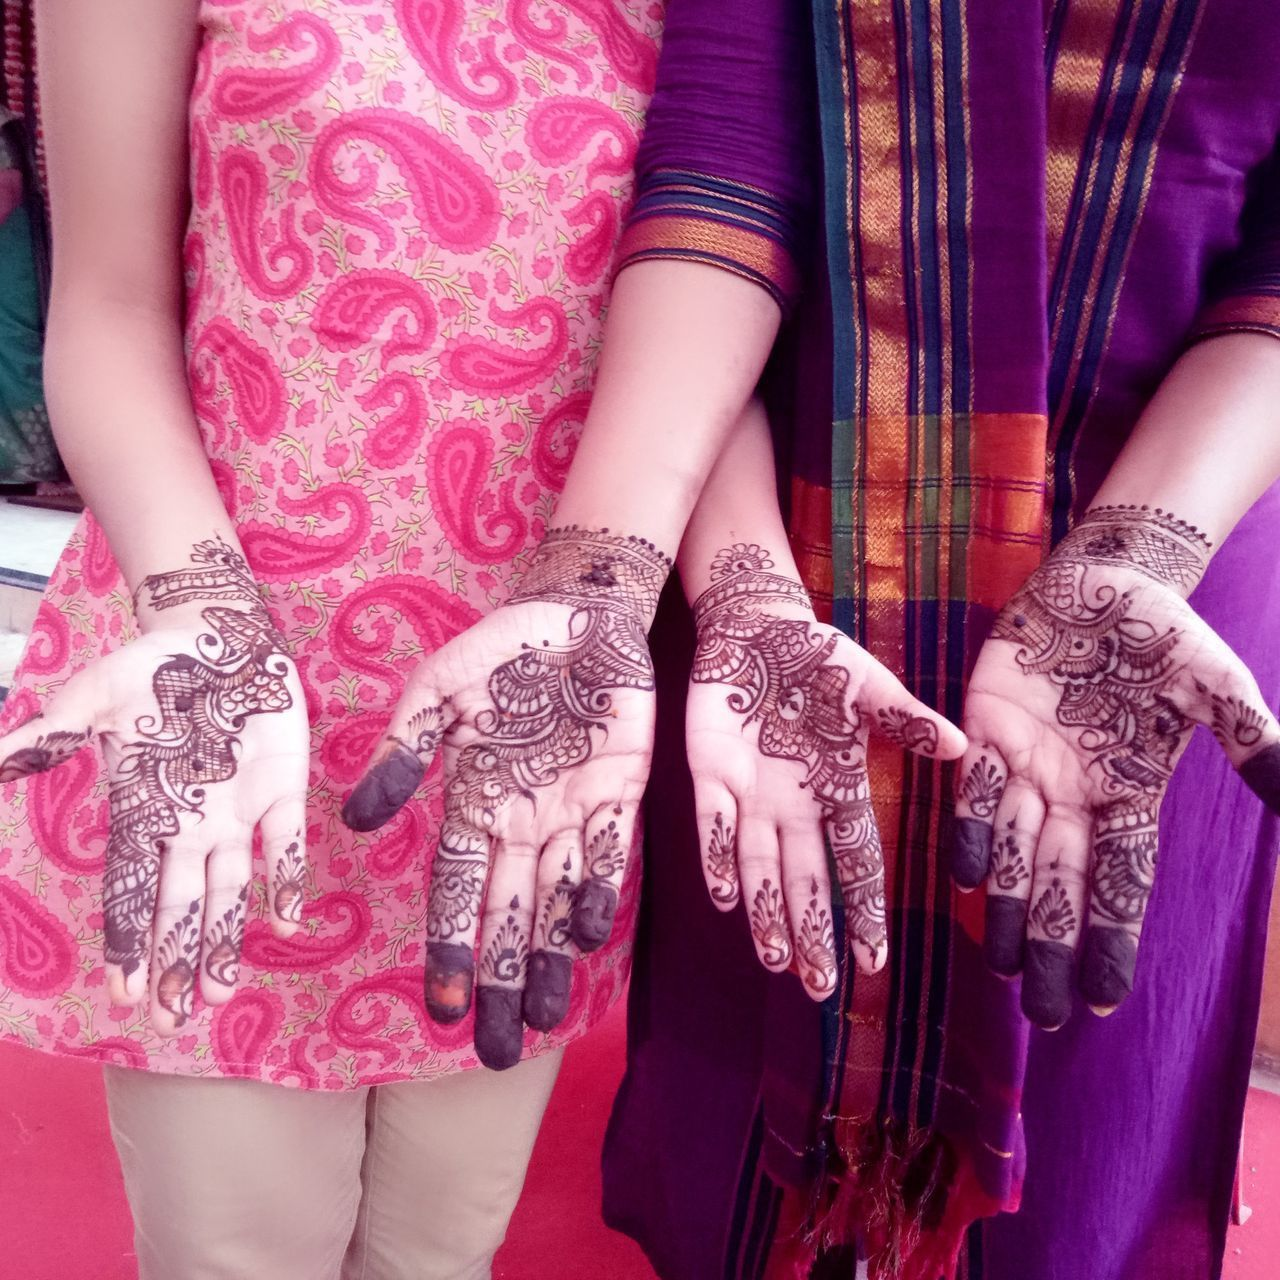 That's mehendi/heena🌿 It's dried n powered leaves of Lawsonia inermis (scientific name). It has cooling effect. Also use as natural hair colour. It gives beautiful orange to brown colour on skin as well as hair. Turmeric and Heena are integral part of Hindu wedding. Human Body Part Pattern Human Hand Mobile_photographer Mobile Phone Photography Mobilephotography Elégance Mehedi Art On Hand Mehendi Art Design Tradition